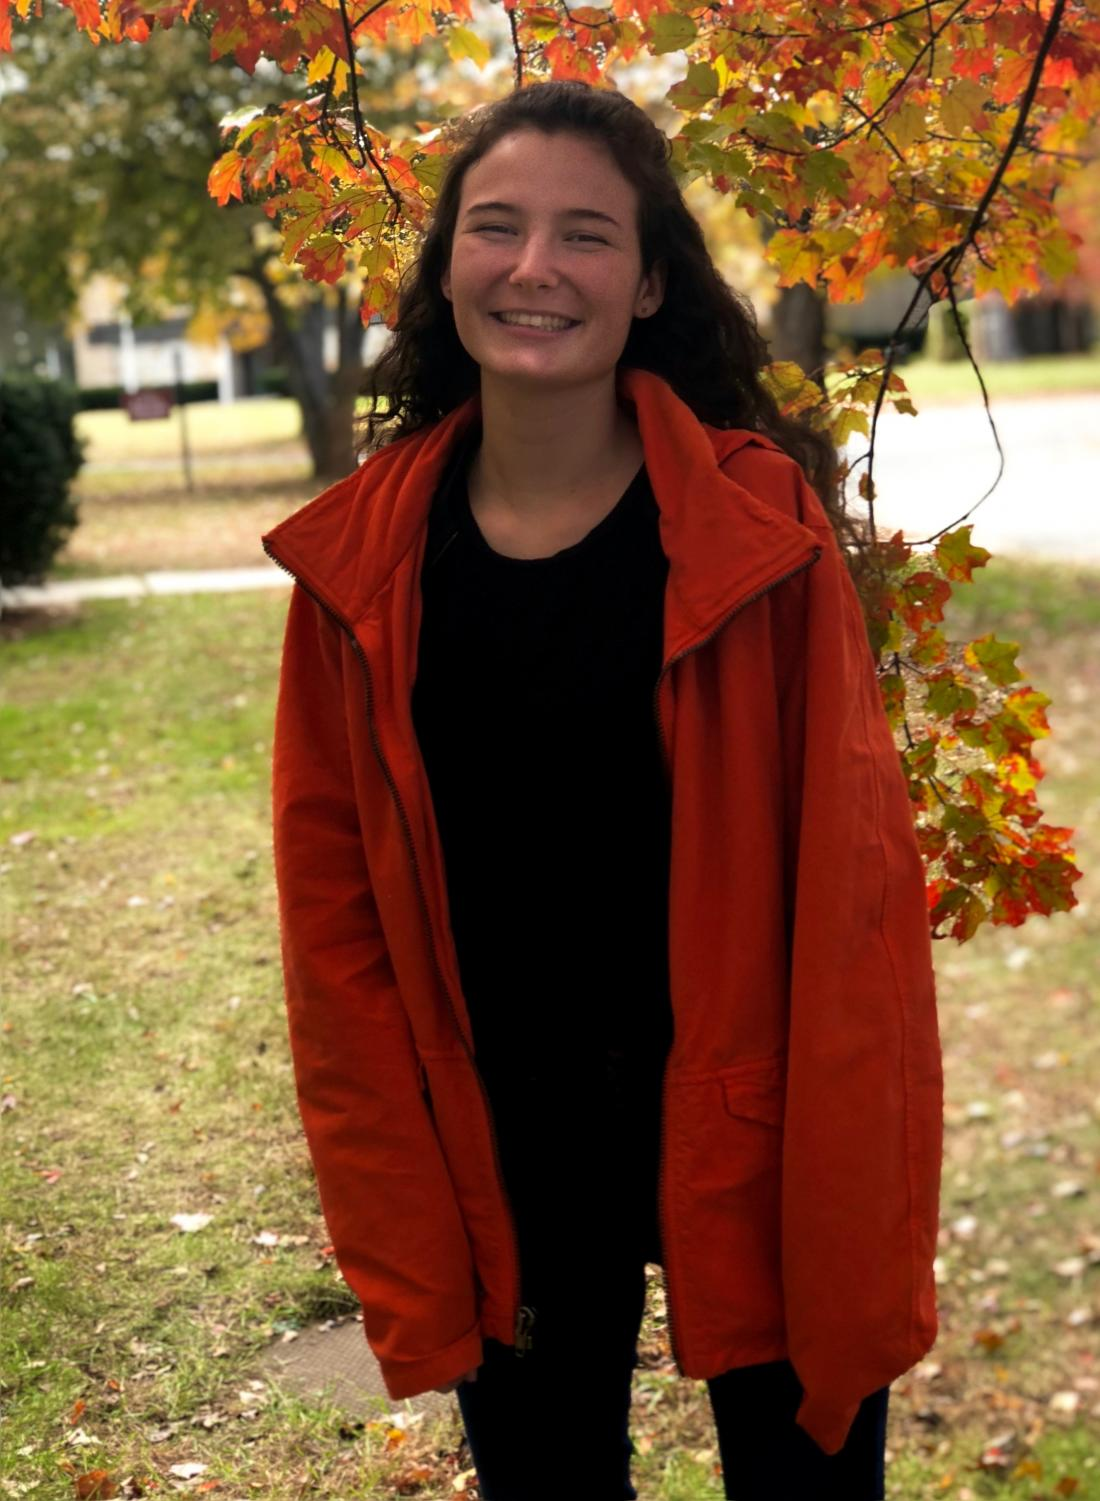 Senior Sophie Sharp wears her orange raincoat to support Anti-Bullying month at MacDuffie.